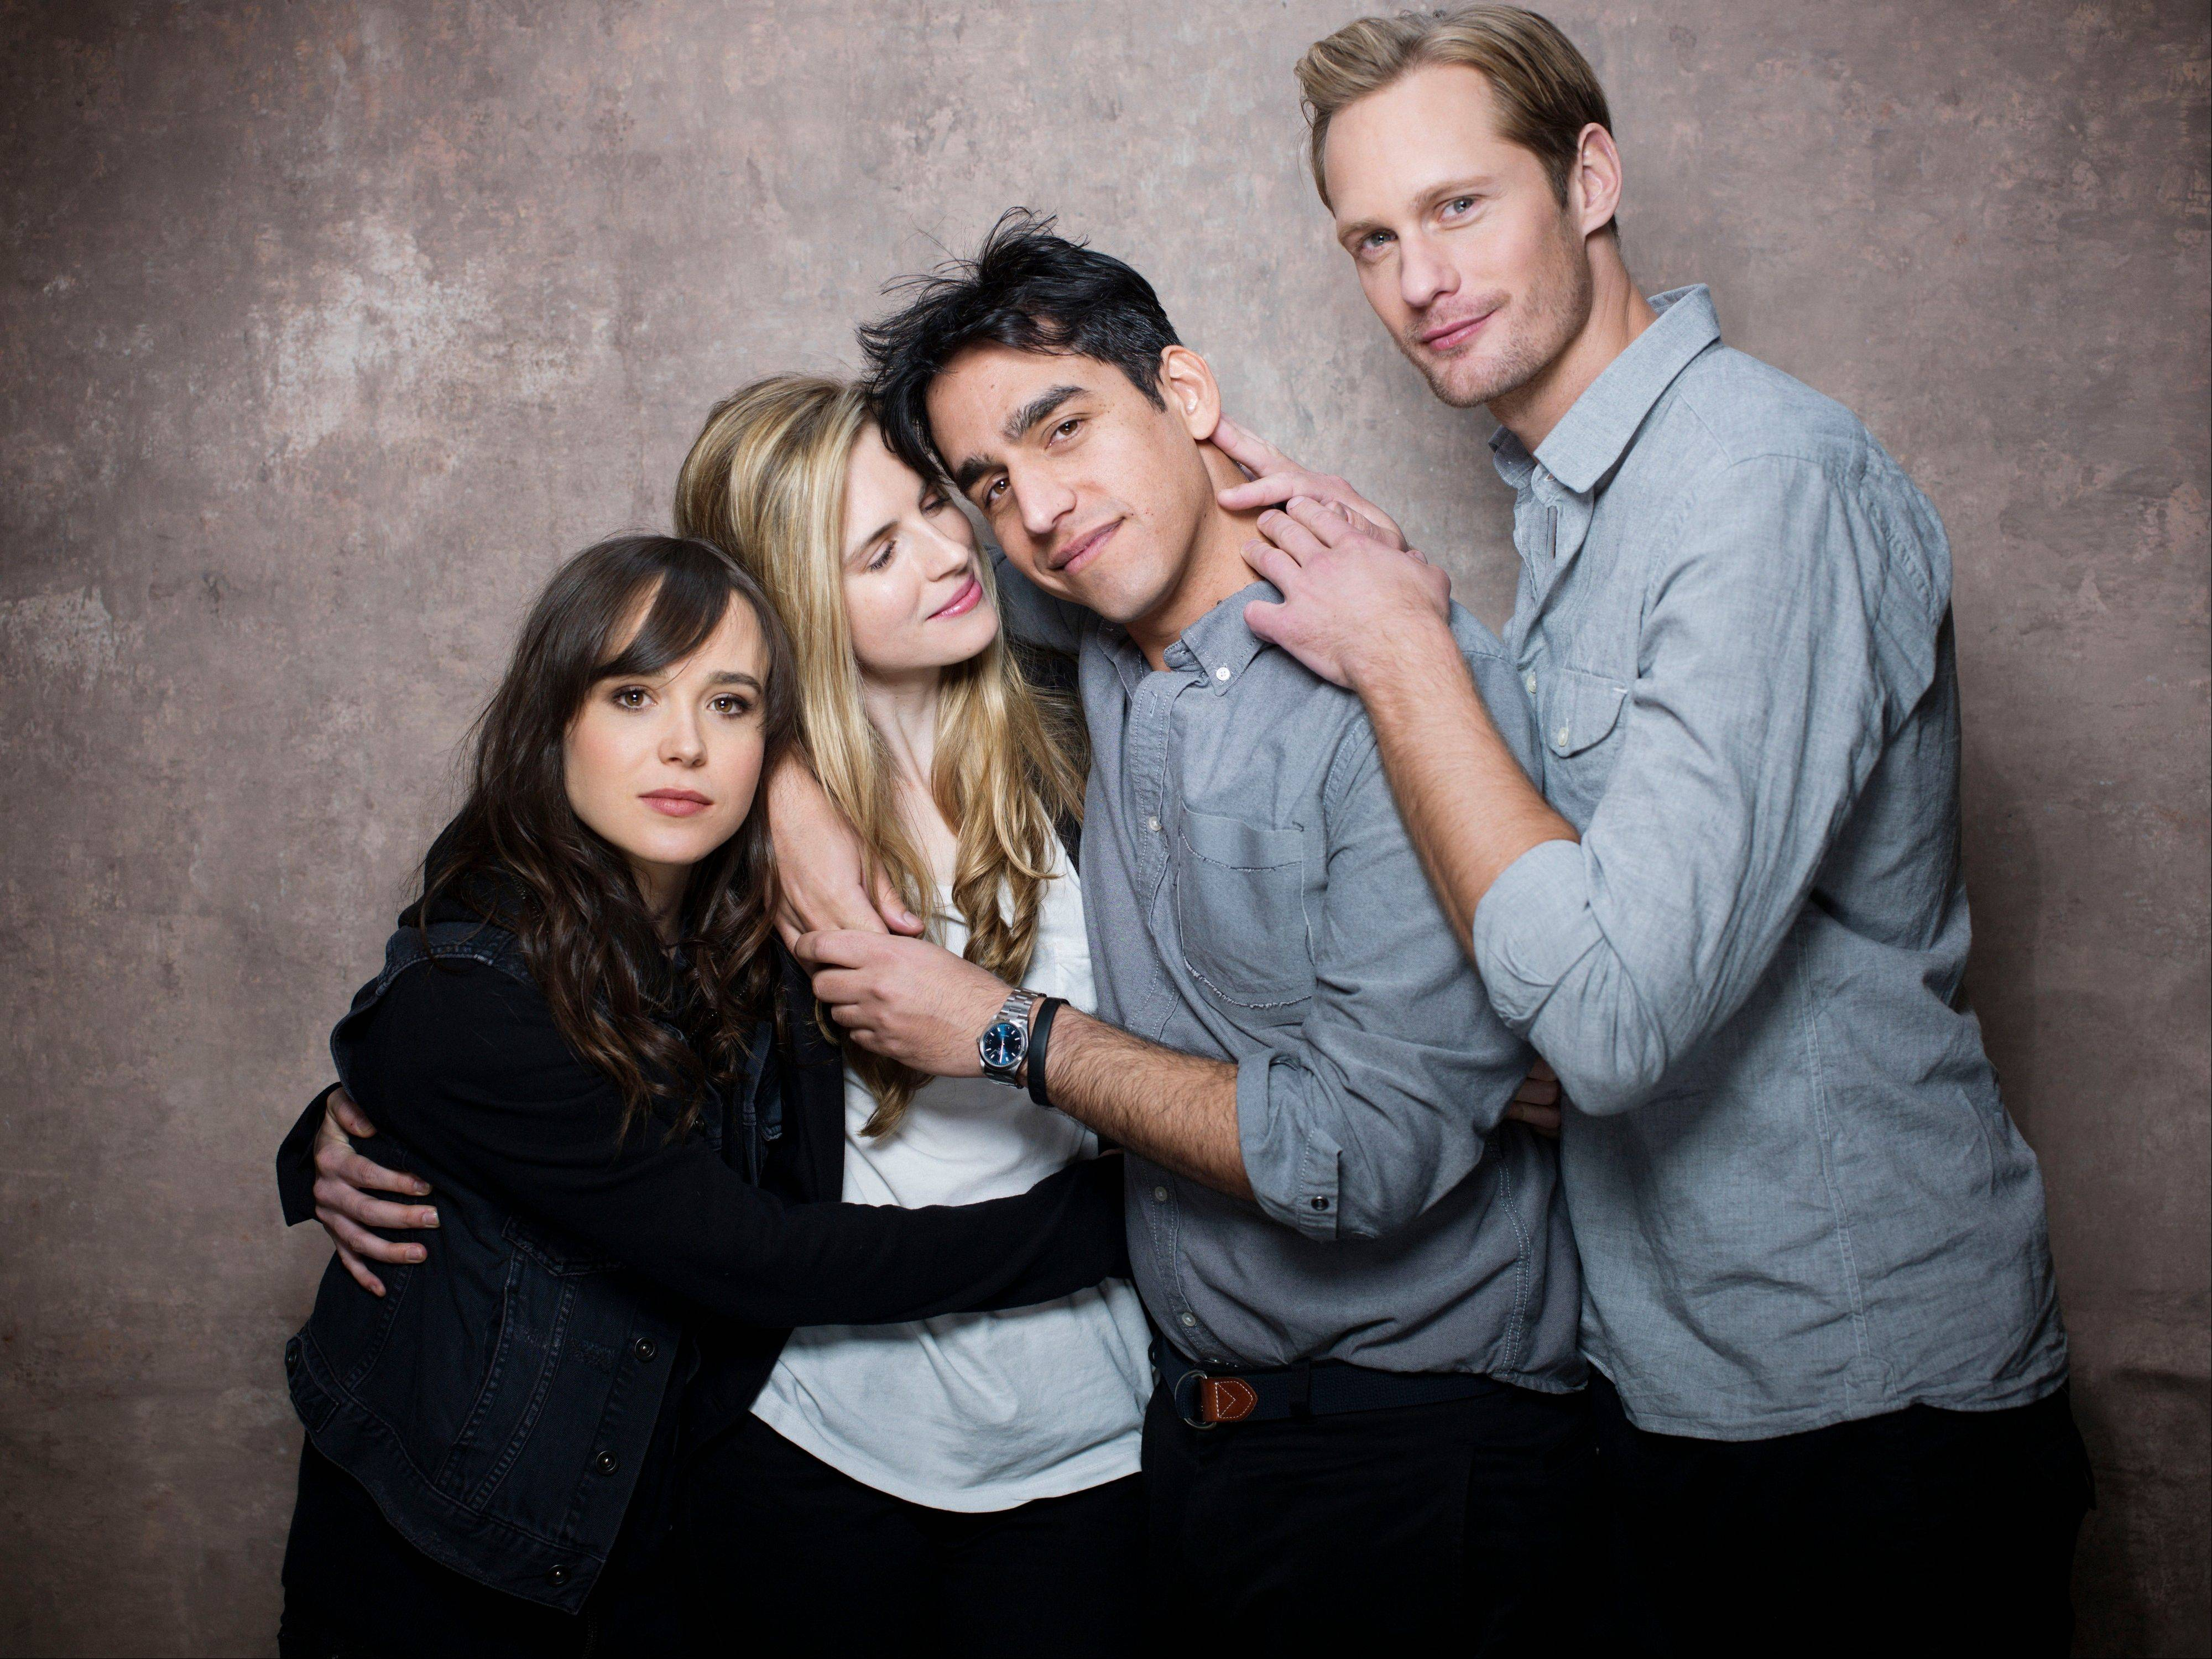 From left, actresses Ellen Page, Brit Marling, director Zal Batmanglij and actor Alexander Skarsgard, from the film �The East� pose for a portrait during the 2013 Sundance Film Festival on Sunday, Jan. 20, 2013 in Park City, Utah.